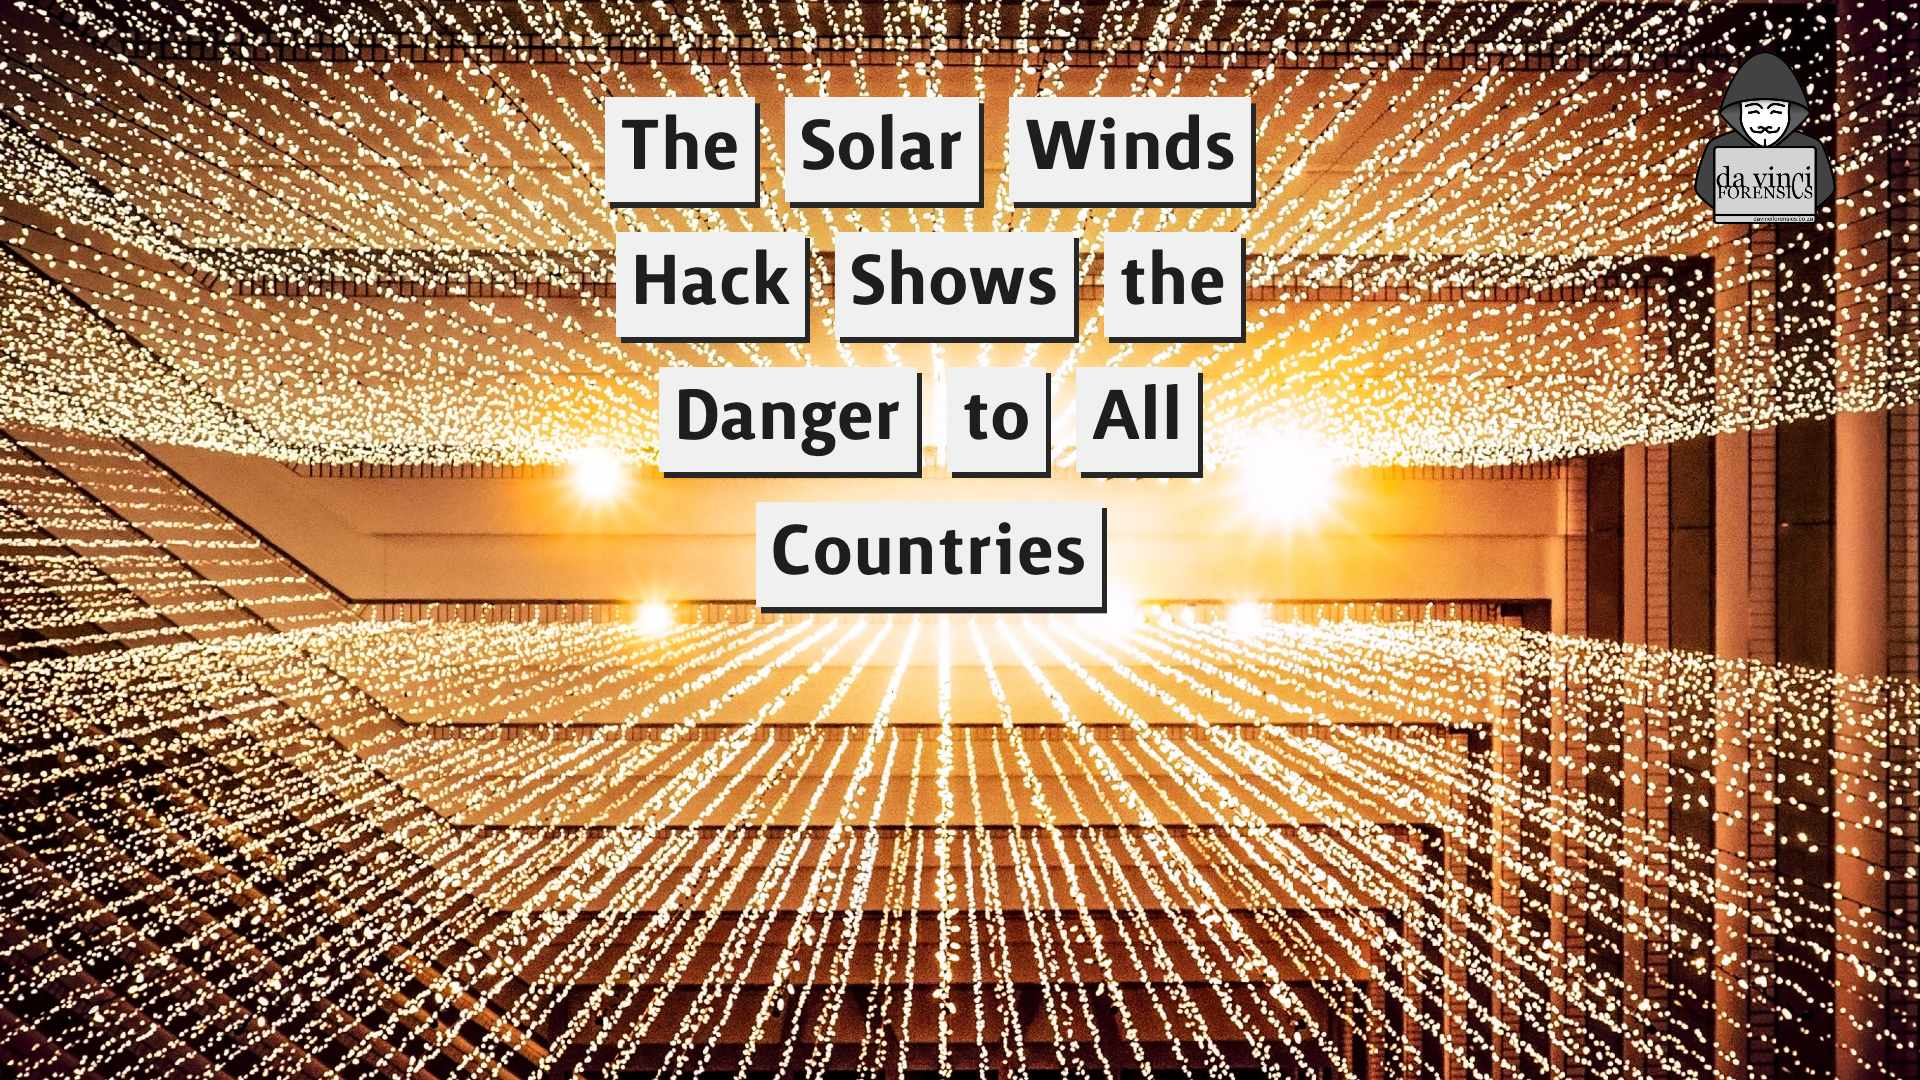 The Solar Winds Hack Shows the Danger to All Countries